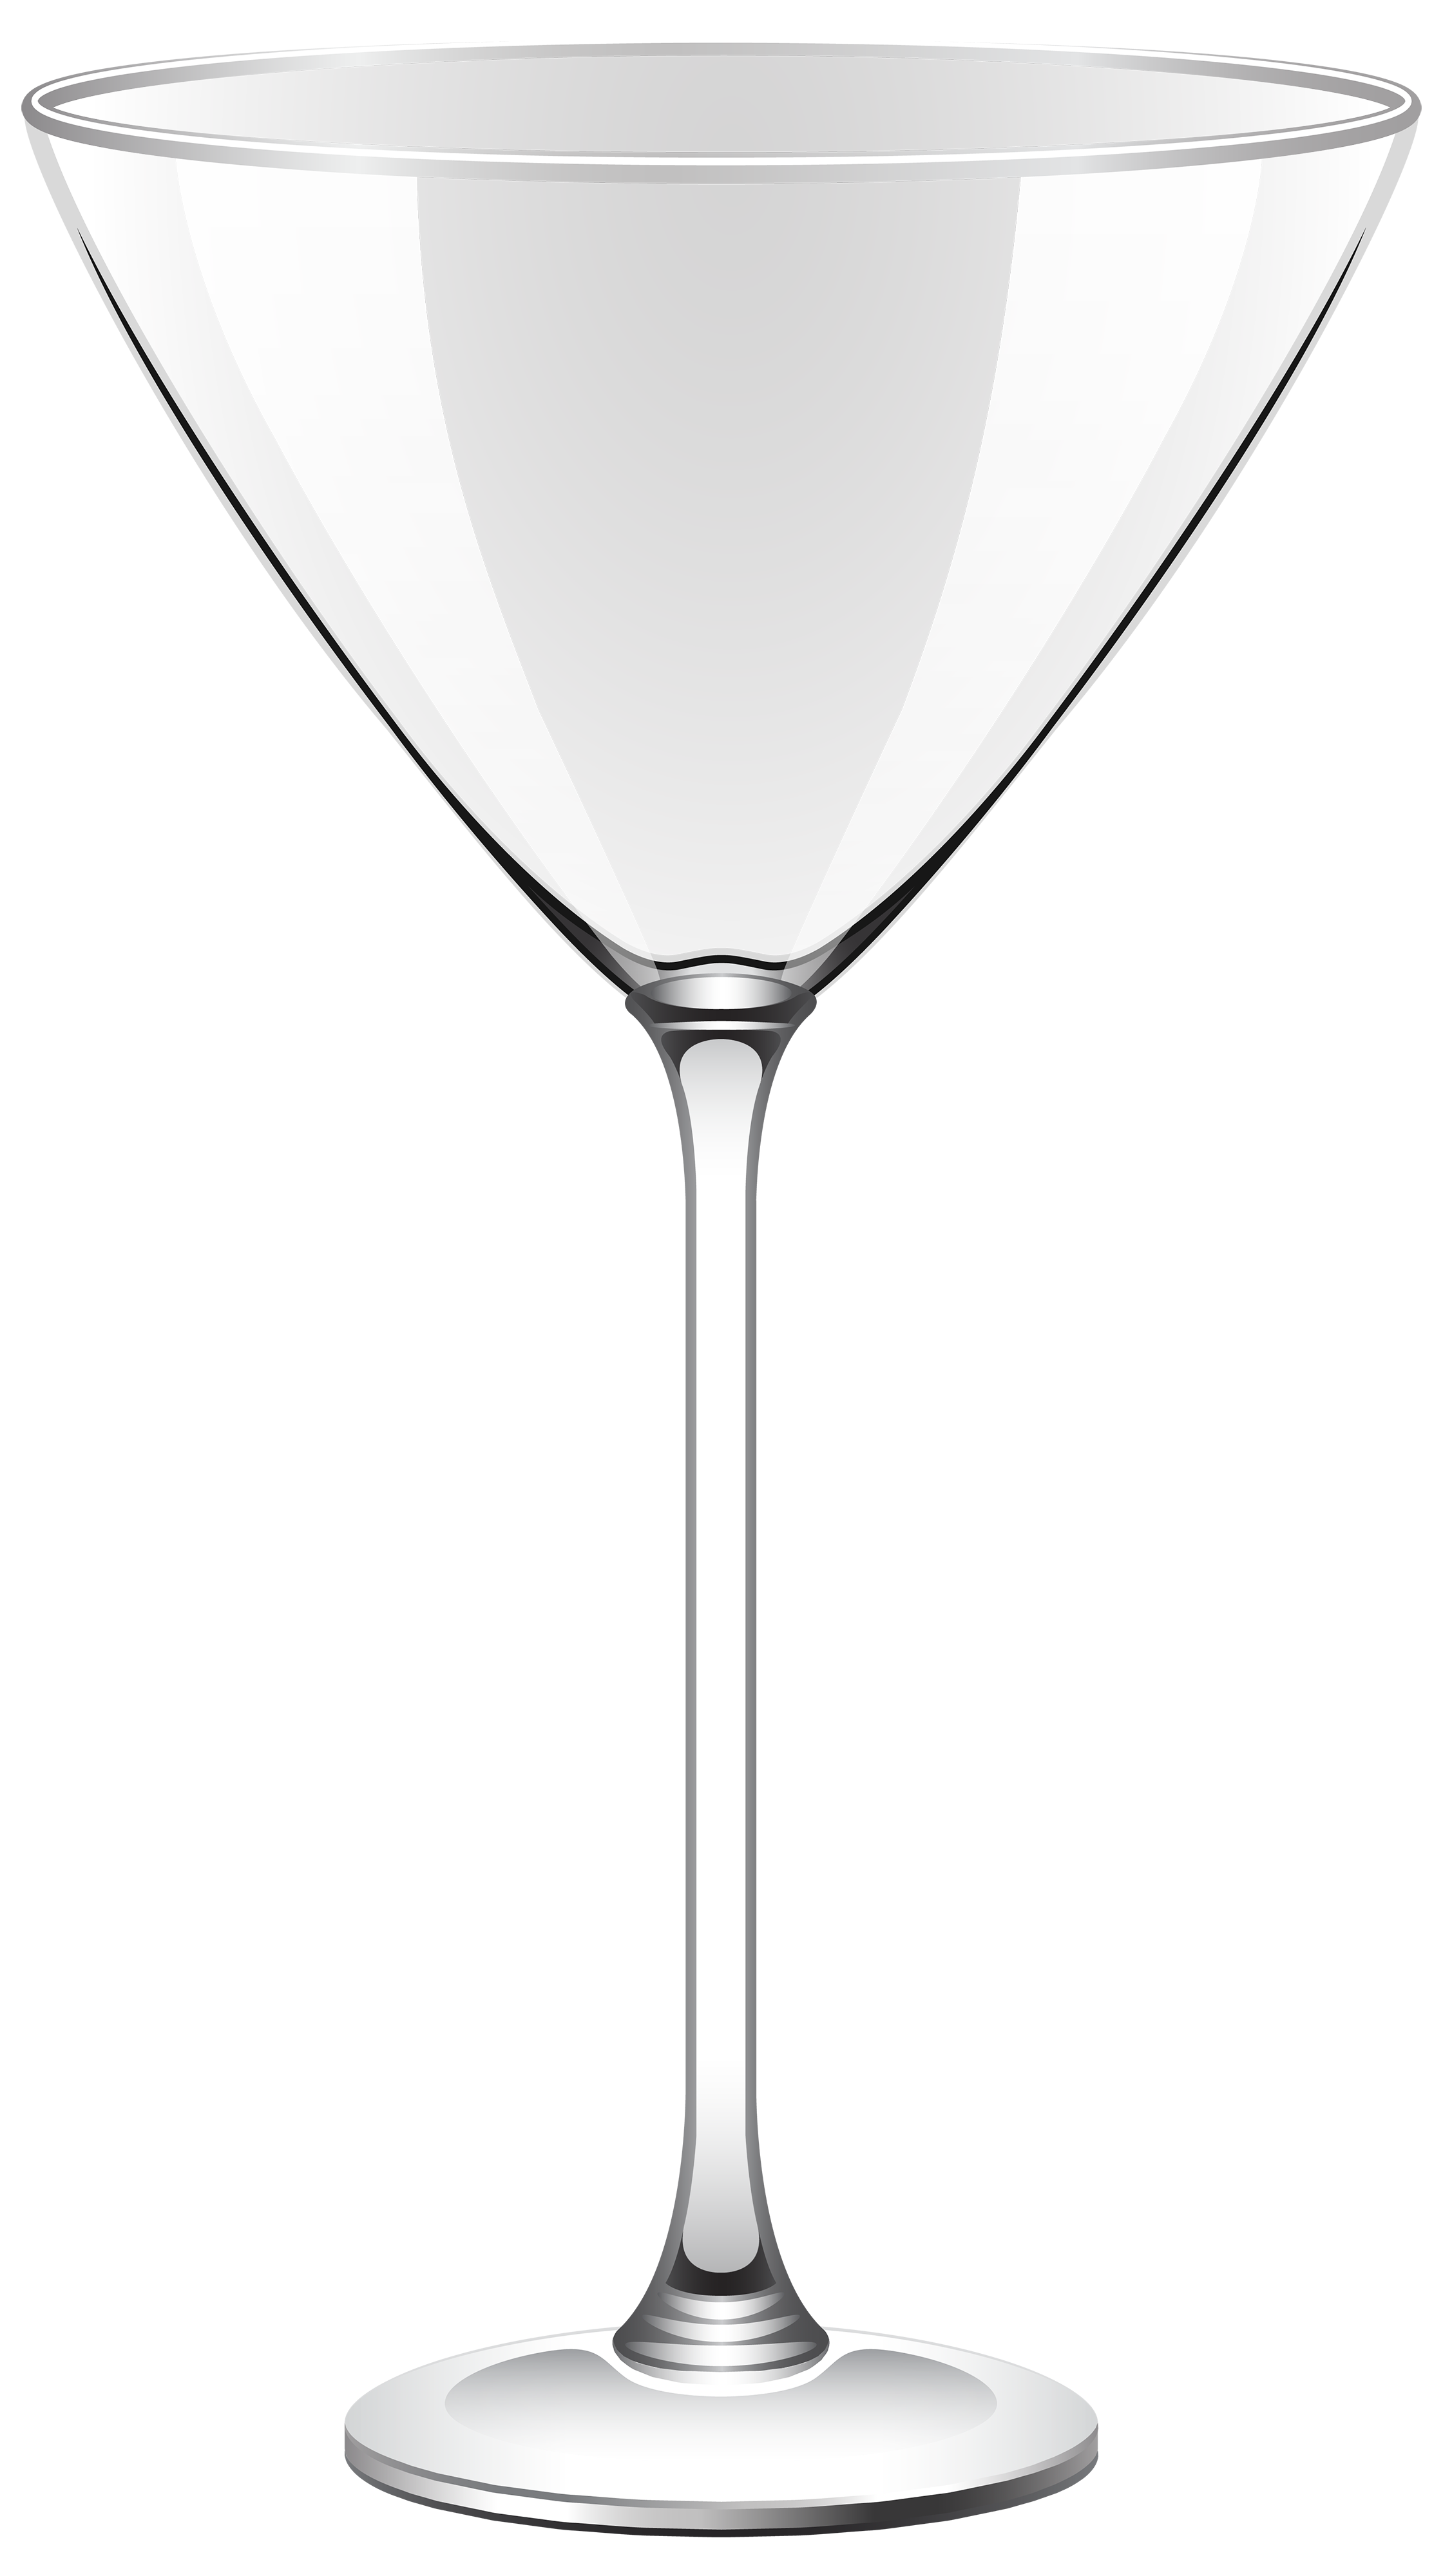 Glass clipart martini glass. Transparent cocktail png best